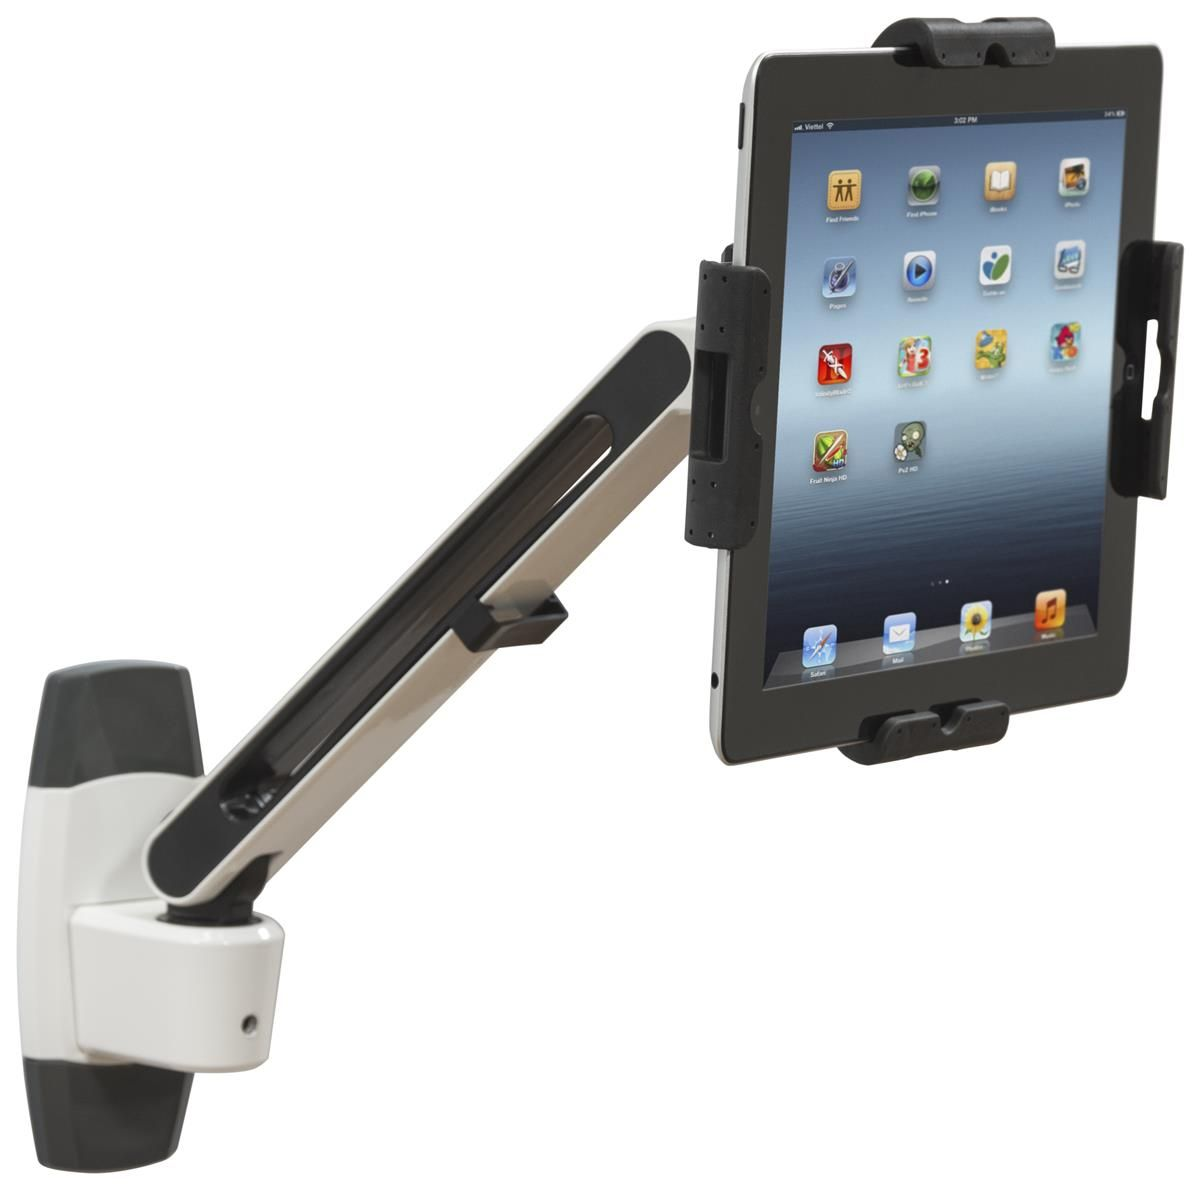 Flexstand Series Ipad Wall Mount With Adjustable Arm Tilts Amp Locks White Amp Black Ipad Wall Mount Tablet Wall Mount Wall Mounted Tv